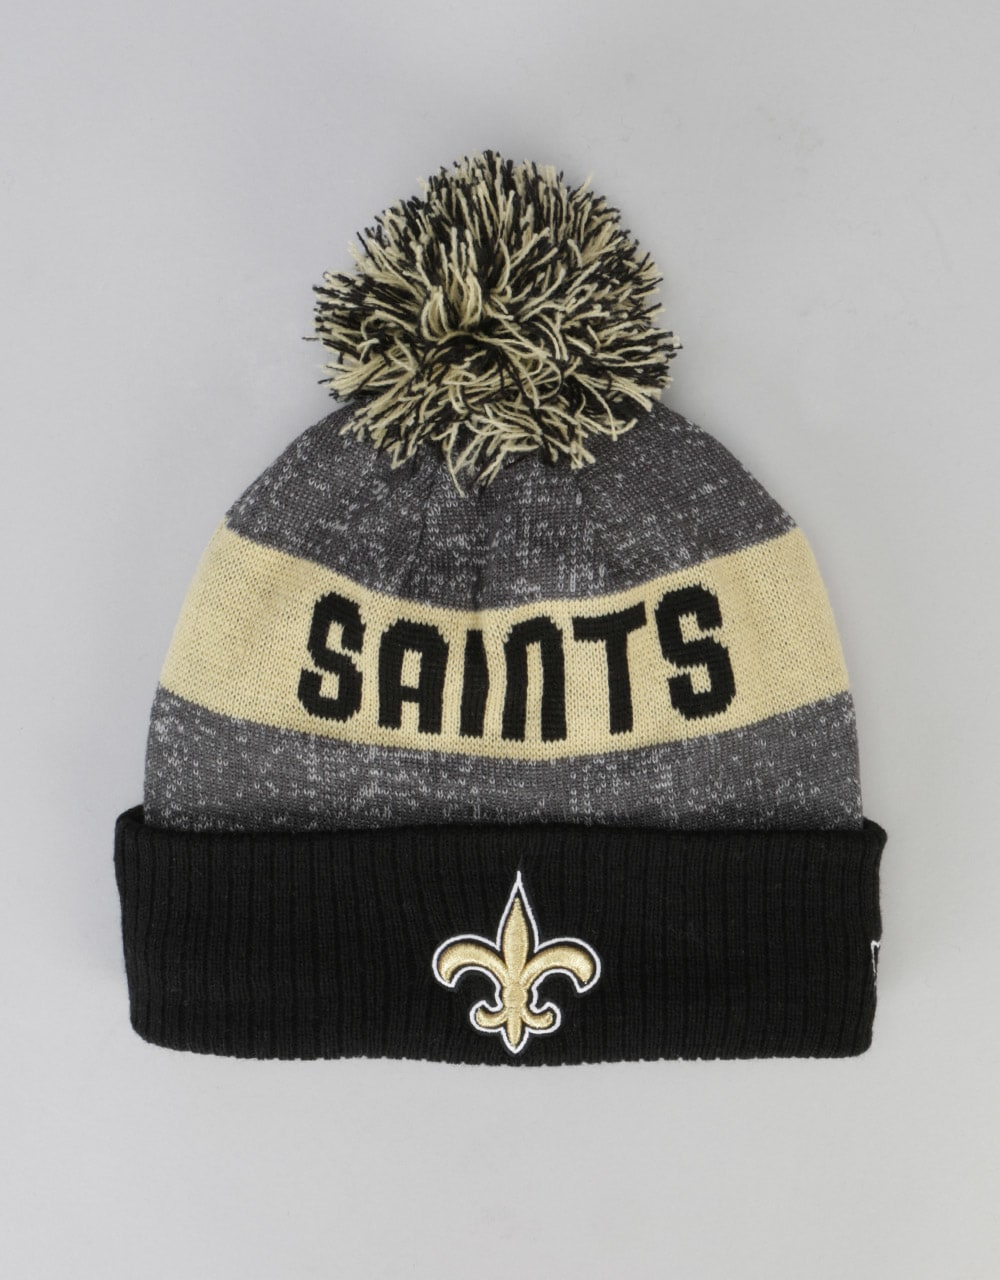 a20774cd519 New Era NFL New Orleans Saints Sideline Bobble Beanie - Grey Black ...